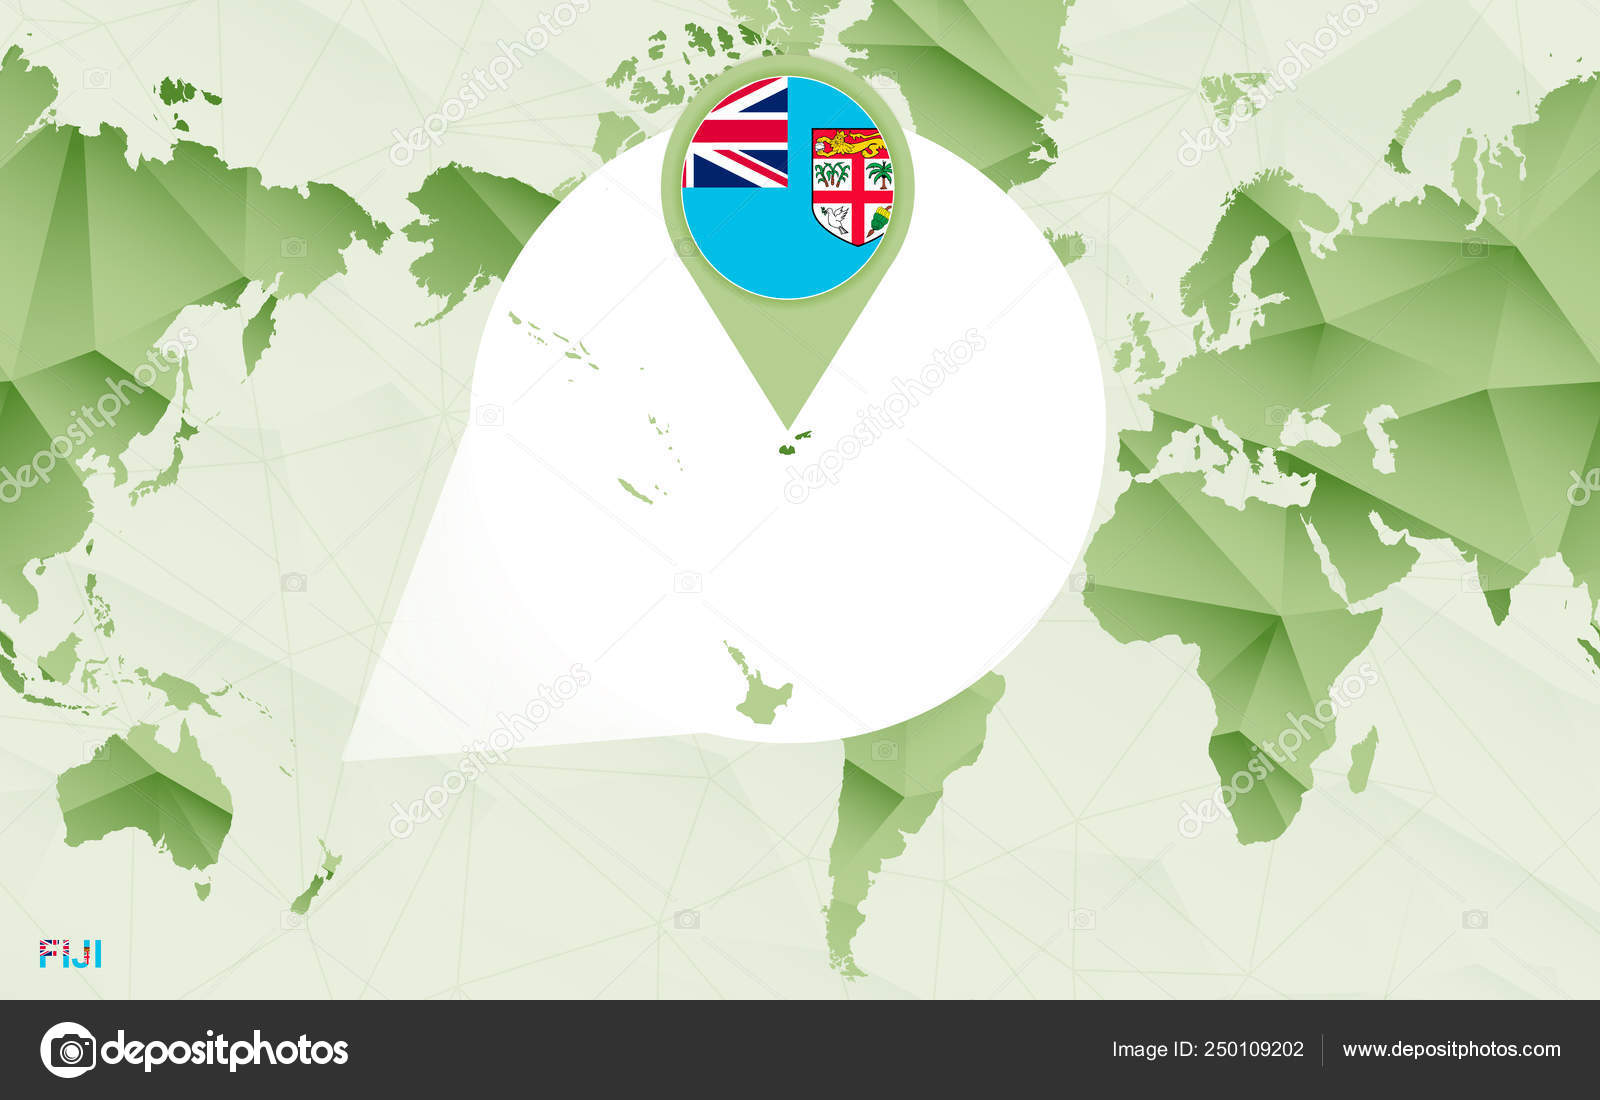 America Centric World Map With Magnified Fiji Map Vector